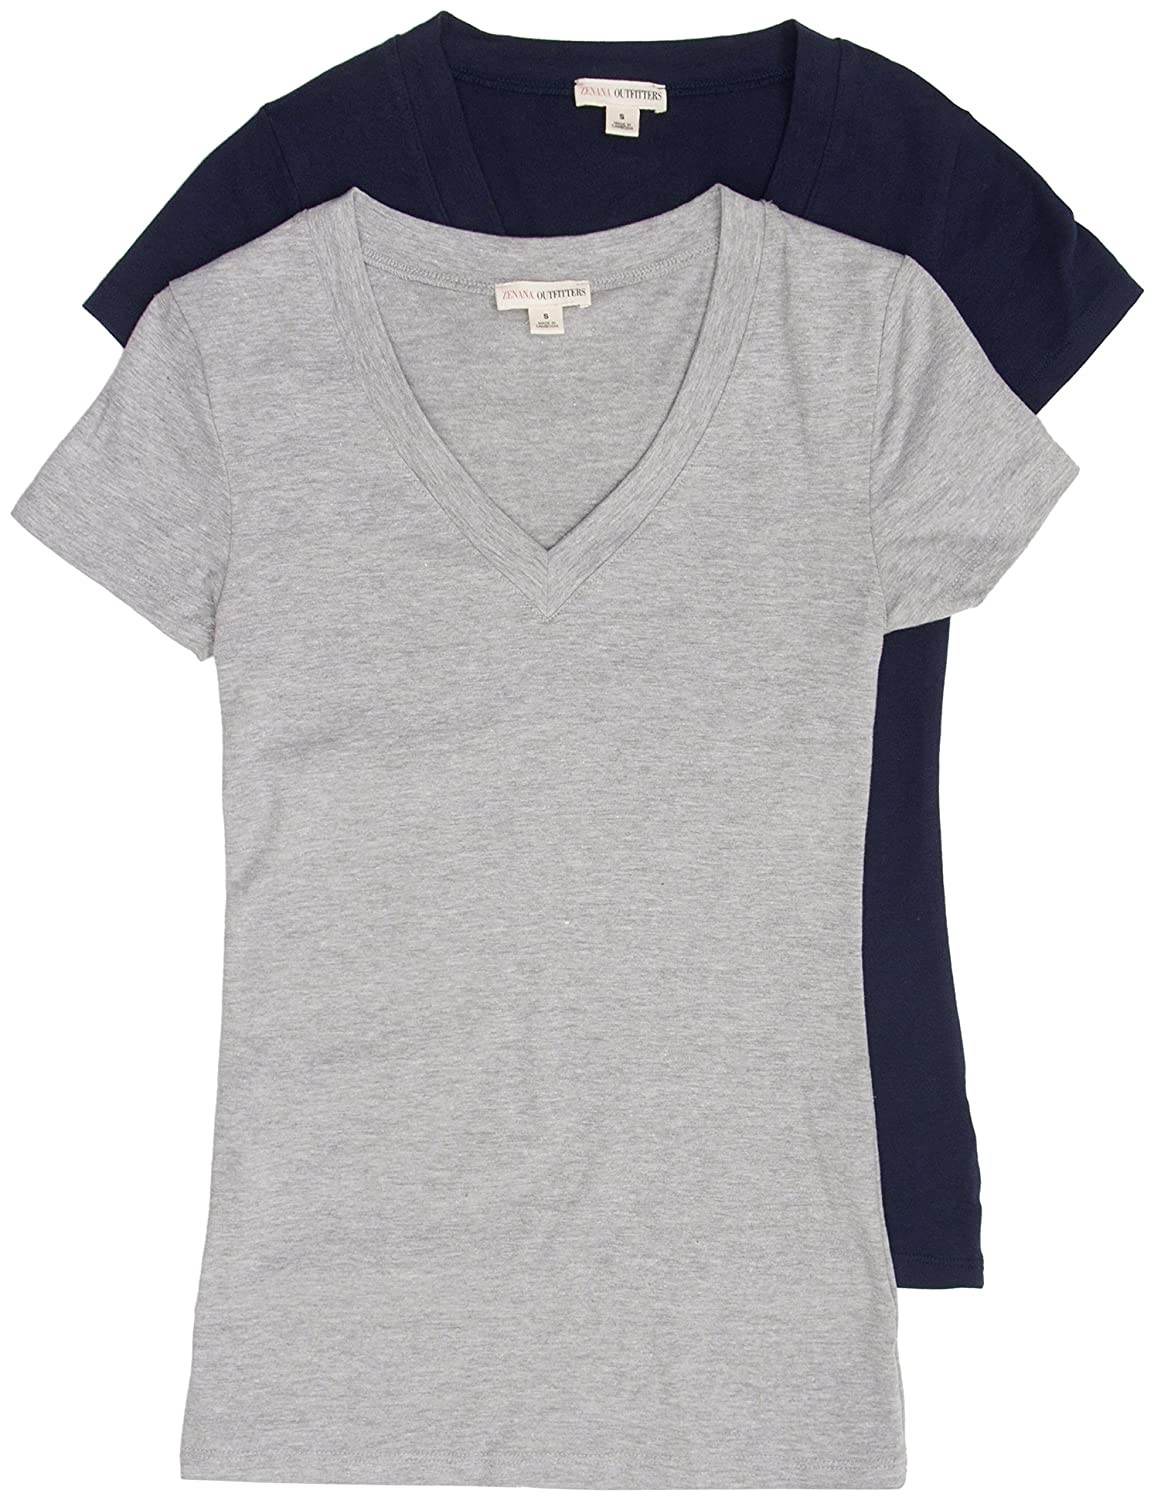 a3c5ad7d1b14b 2 Pack Zenana Women s Basic V-Neck T-Shirts Small Navy